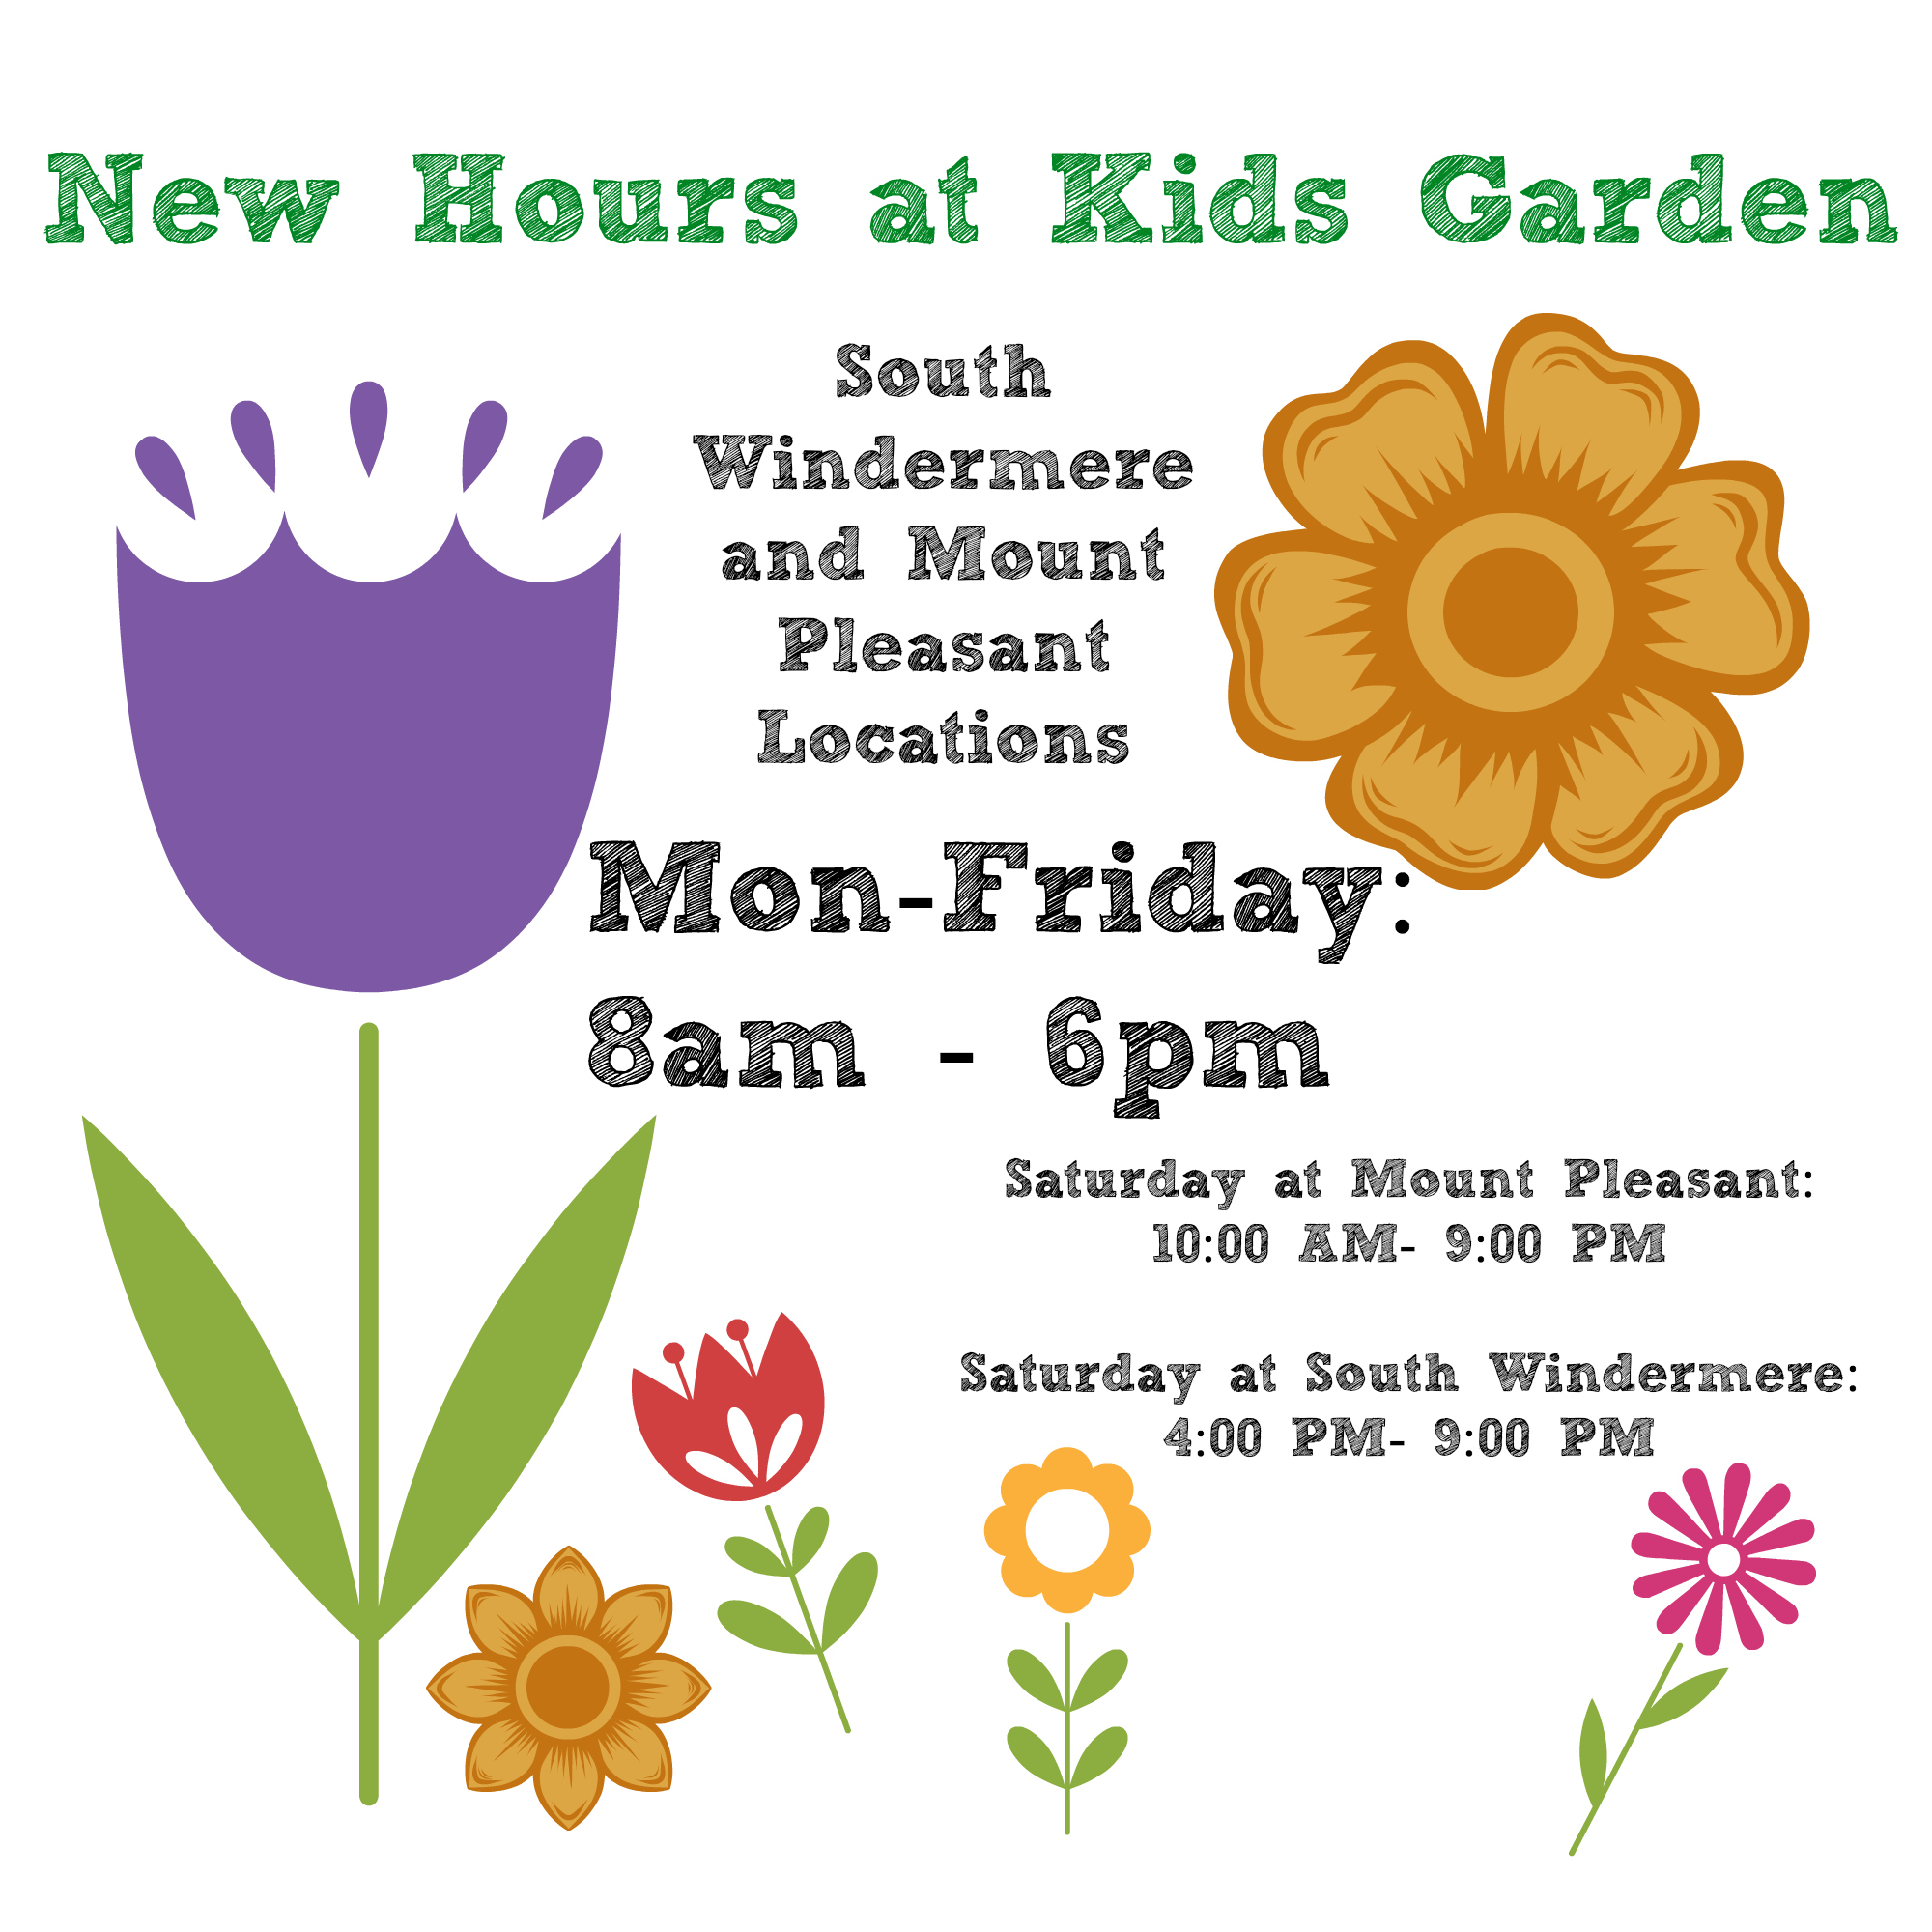 New Hours at Kids Garden